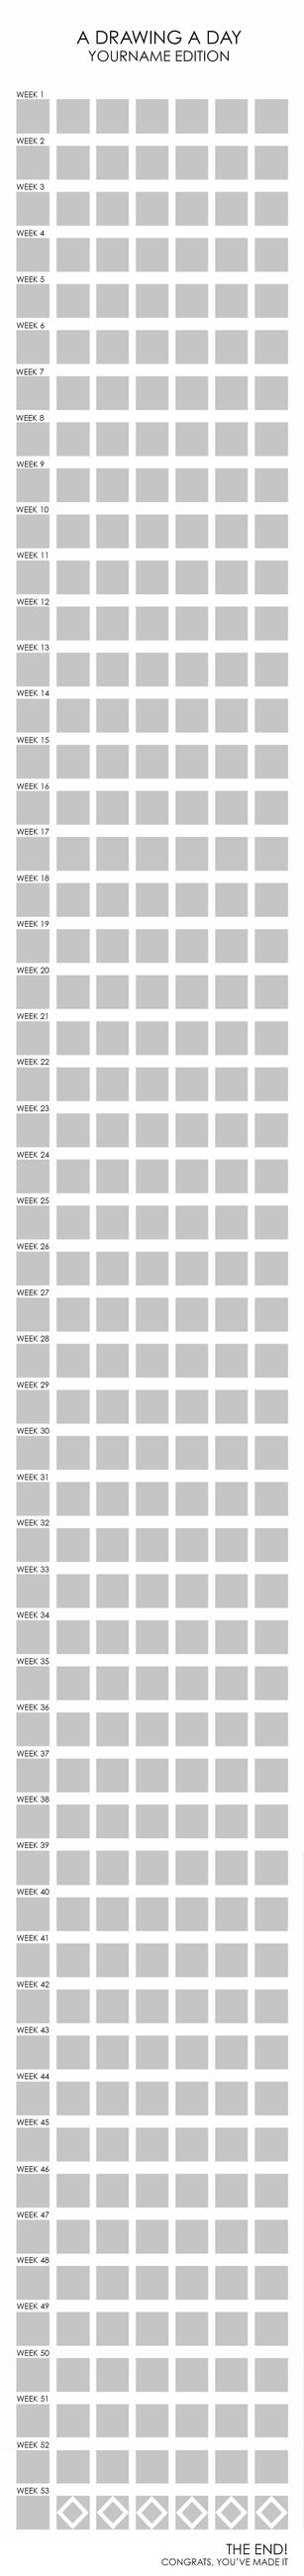 A DRAWING A DAY template